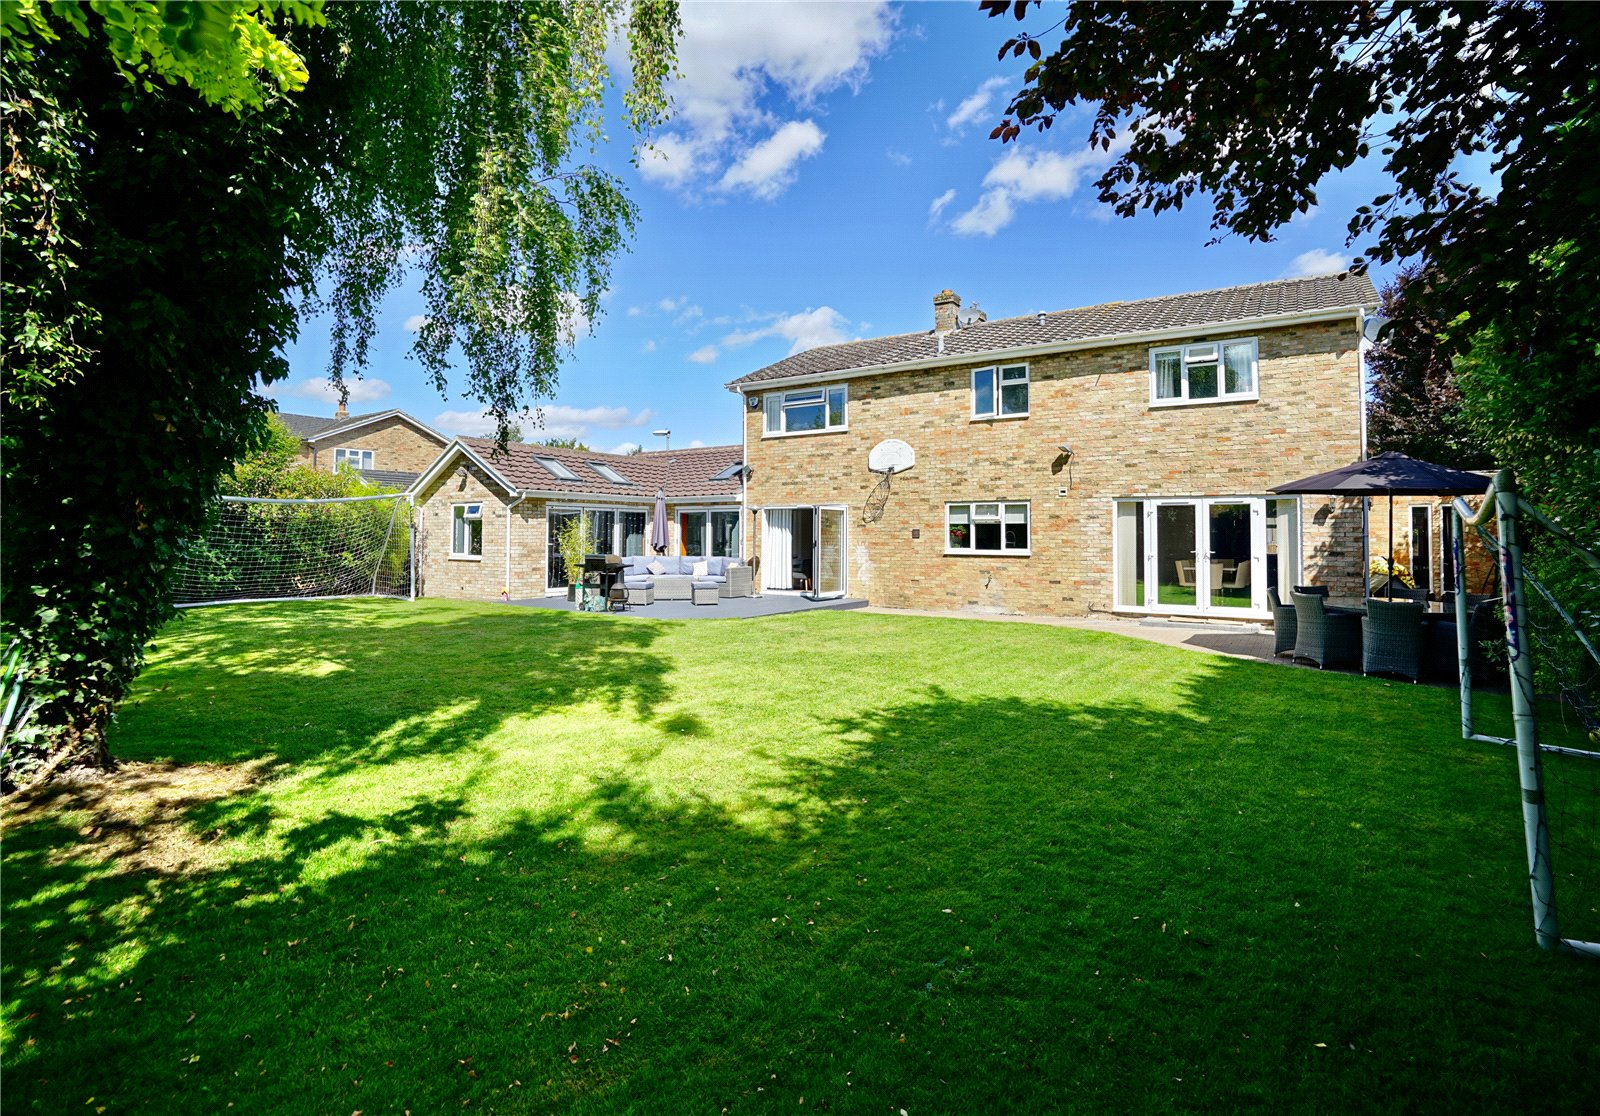 4 bed house for sale in Bluntisham, PE28 3LS - Property Image 1